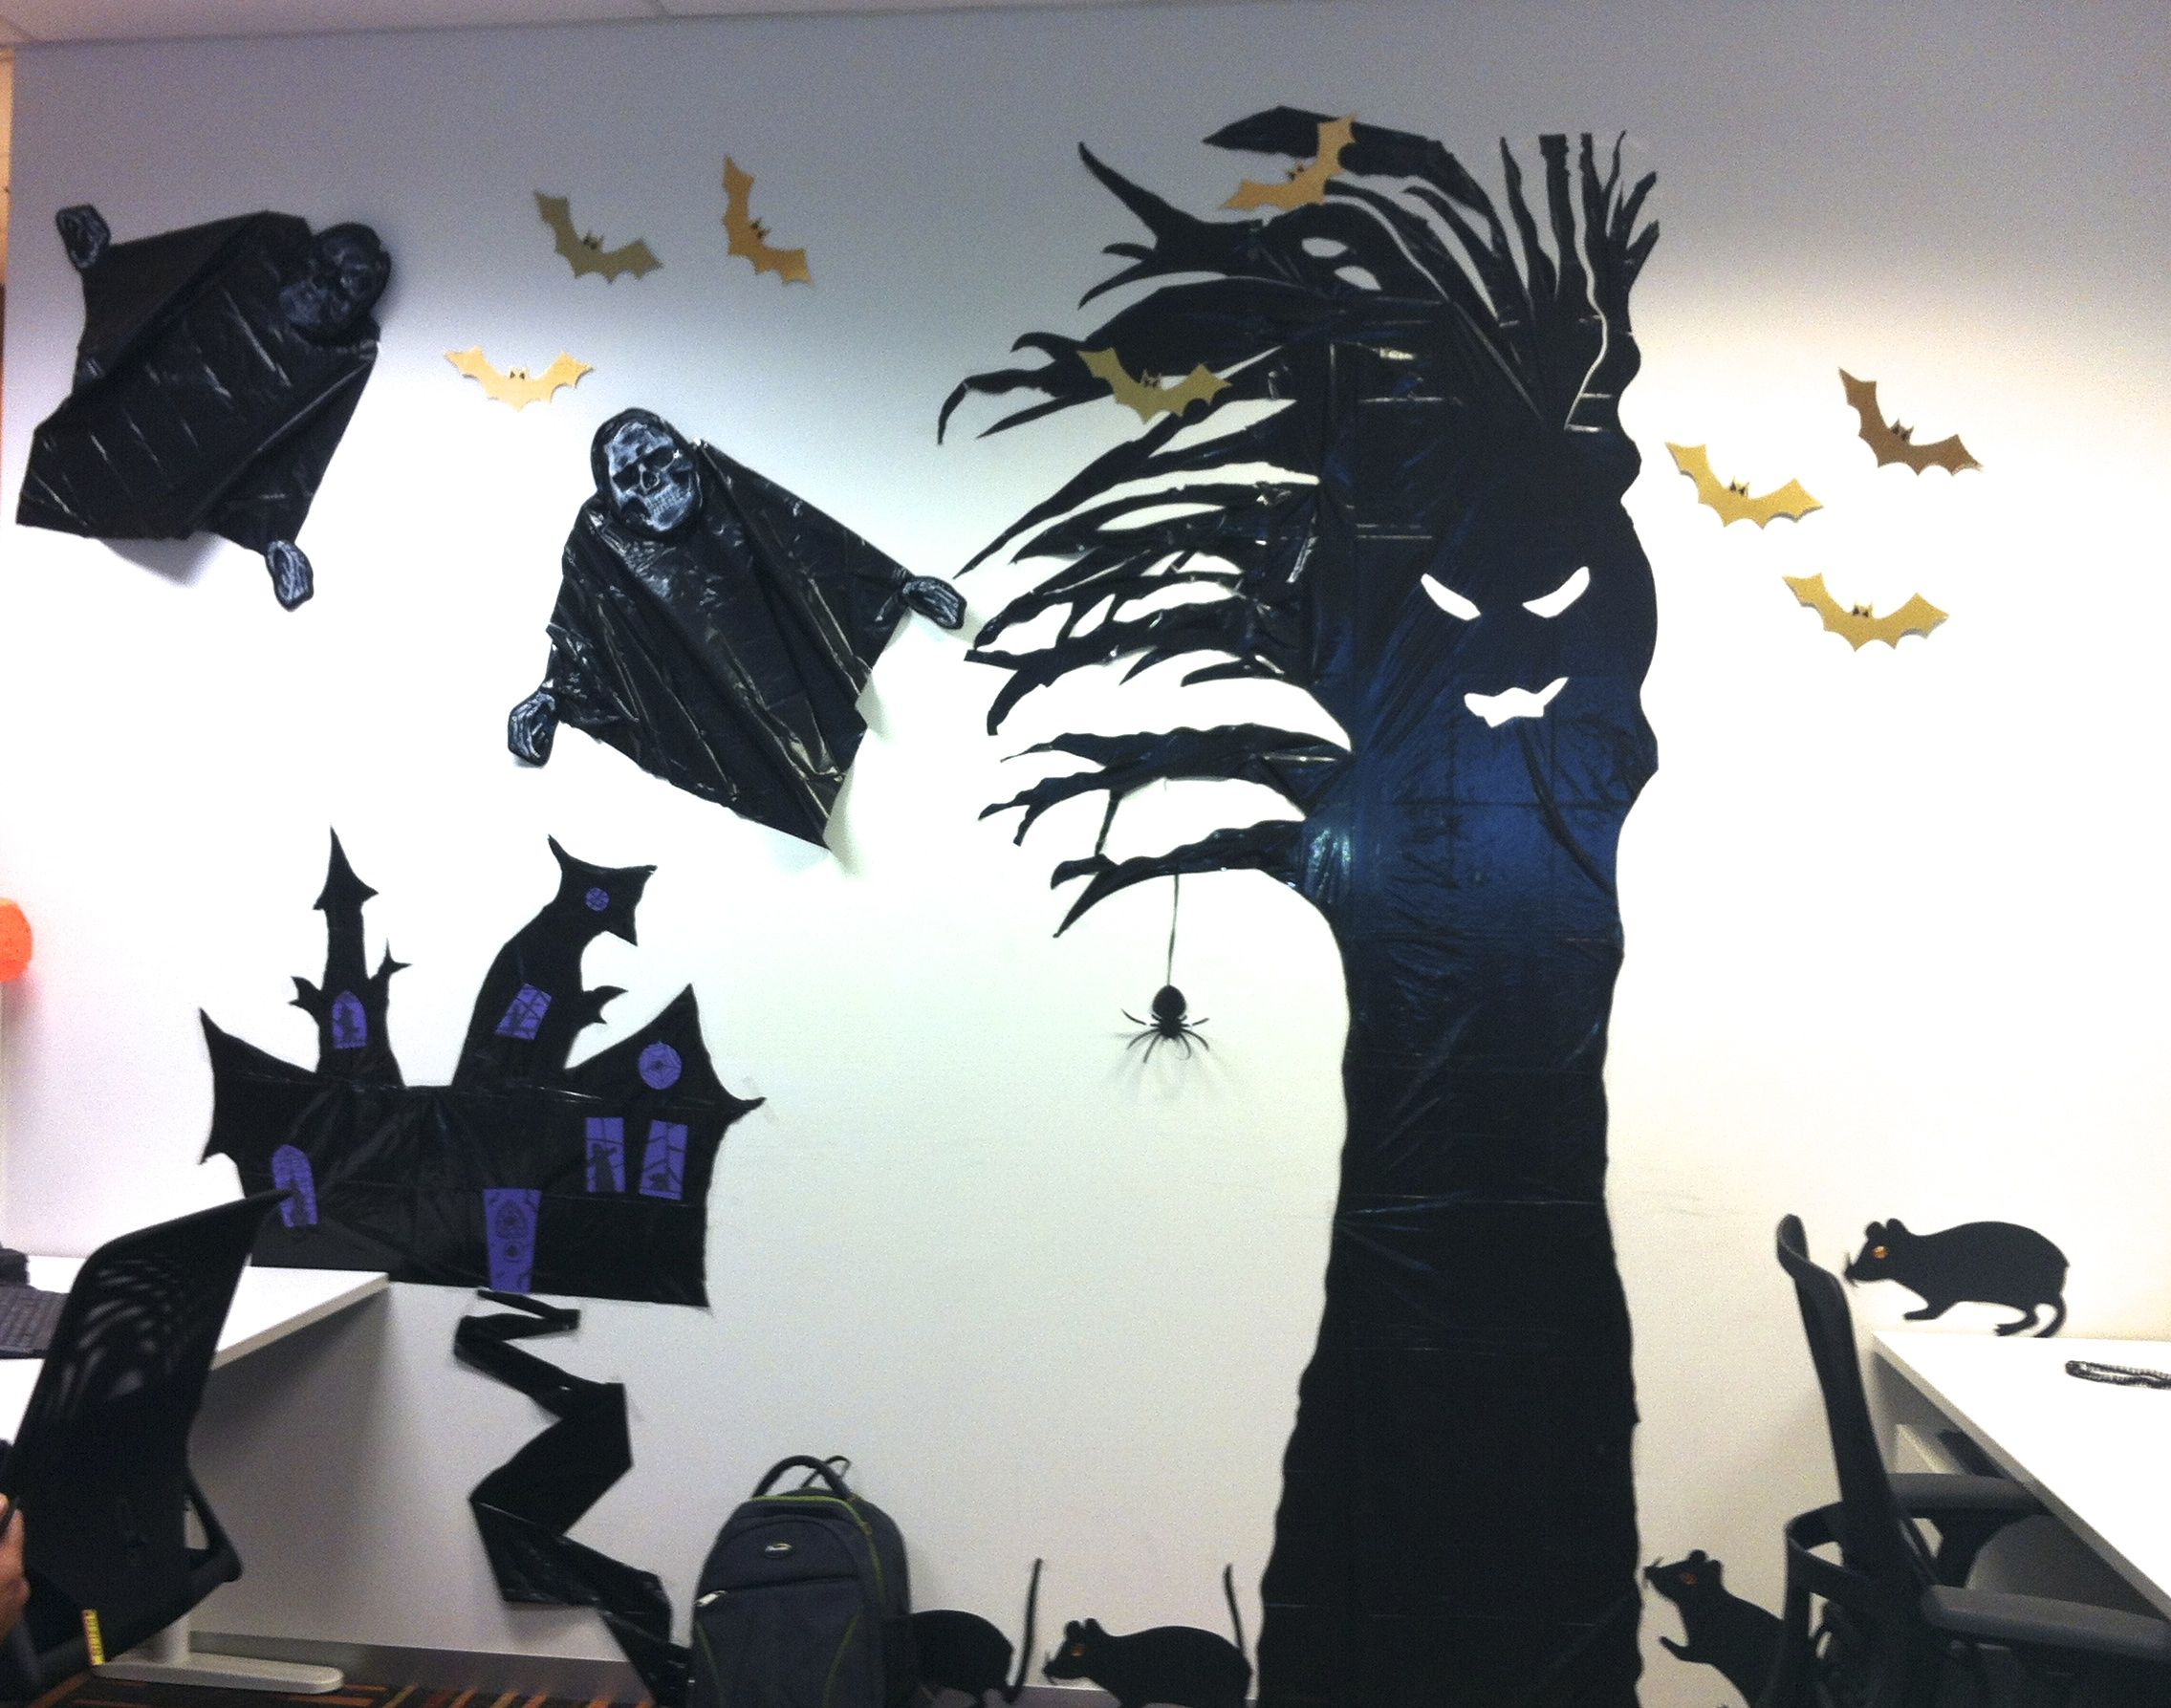 Halloween Decorations at the office made from black plastic - Office Halloween Decor